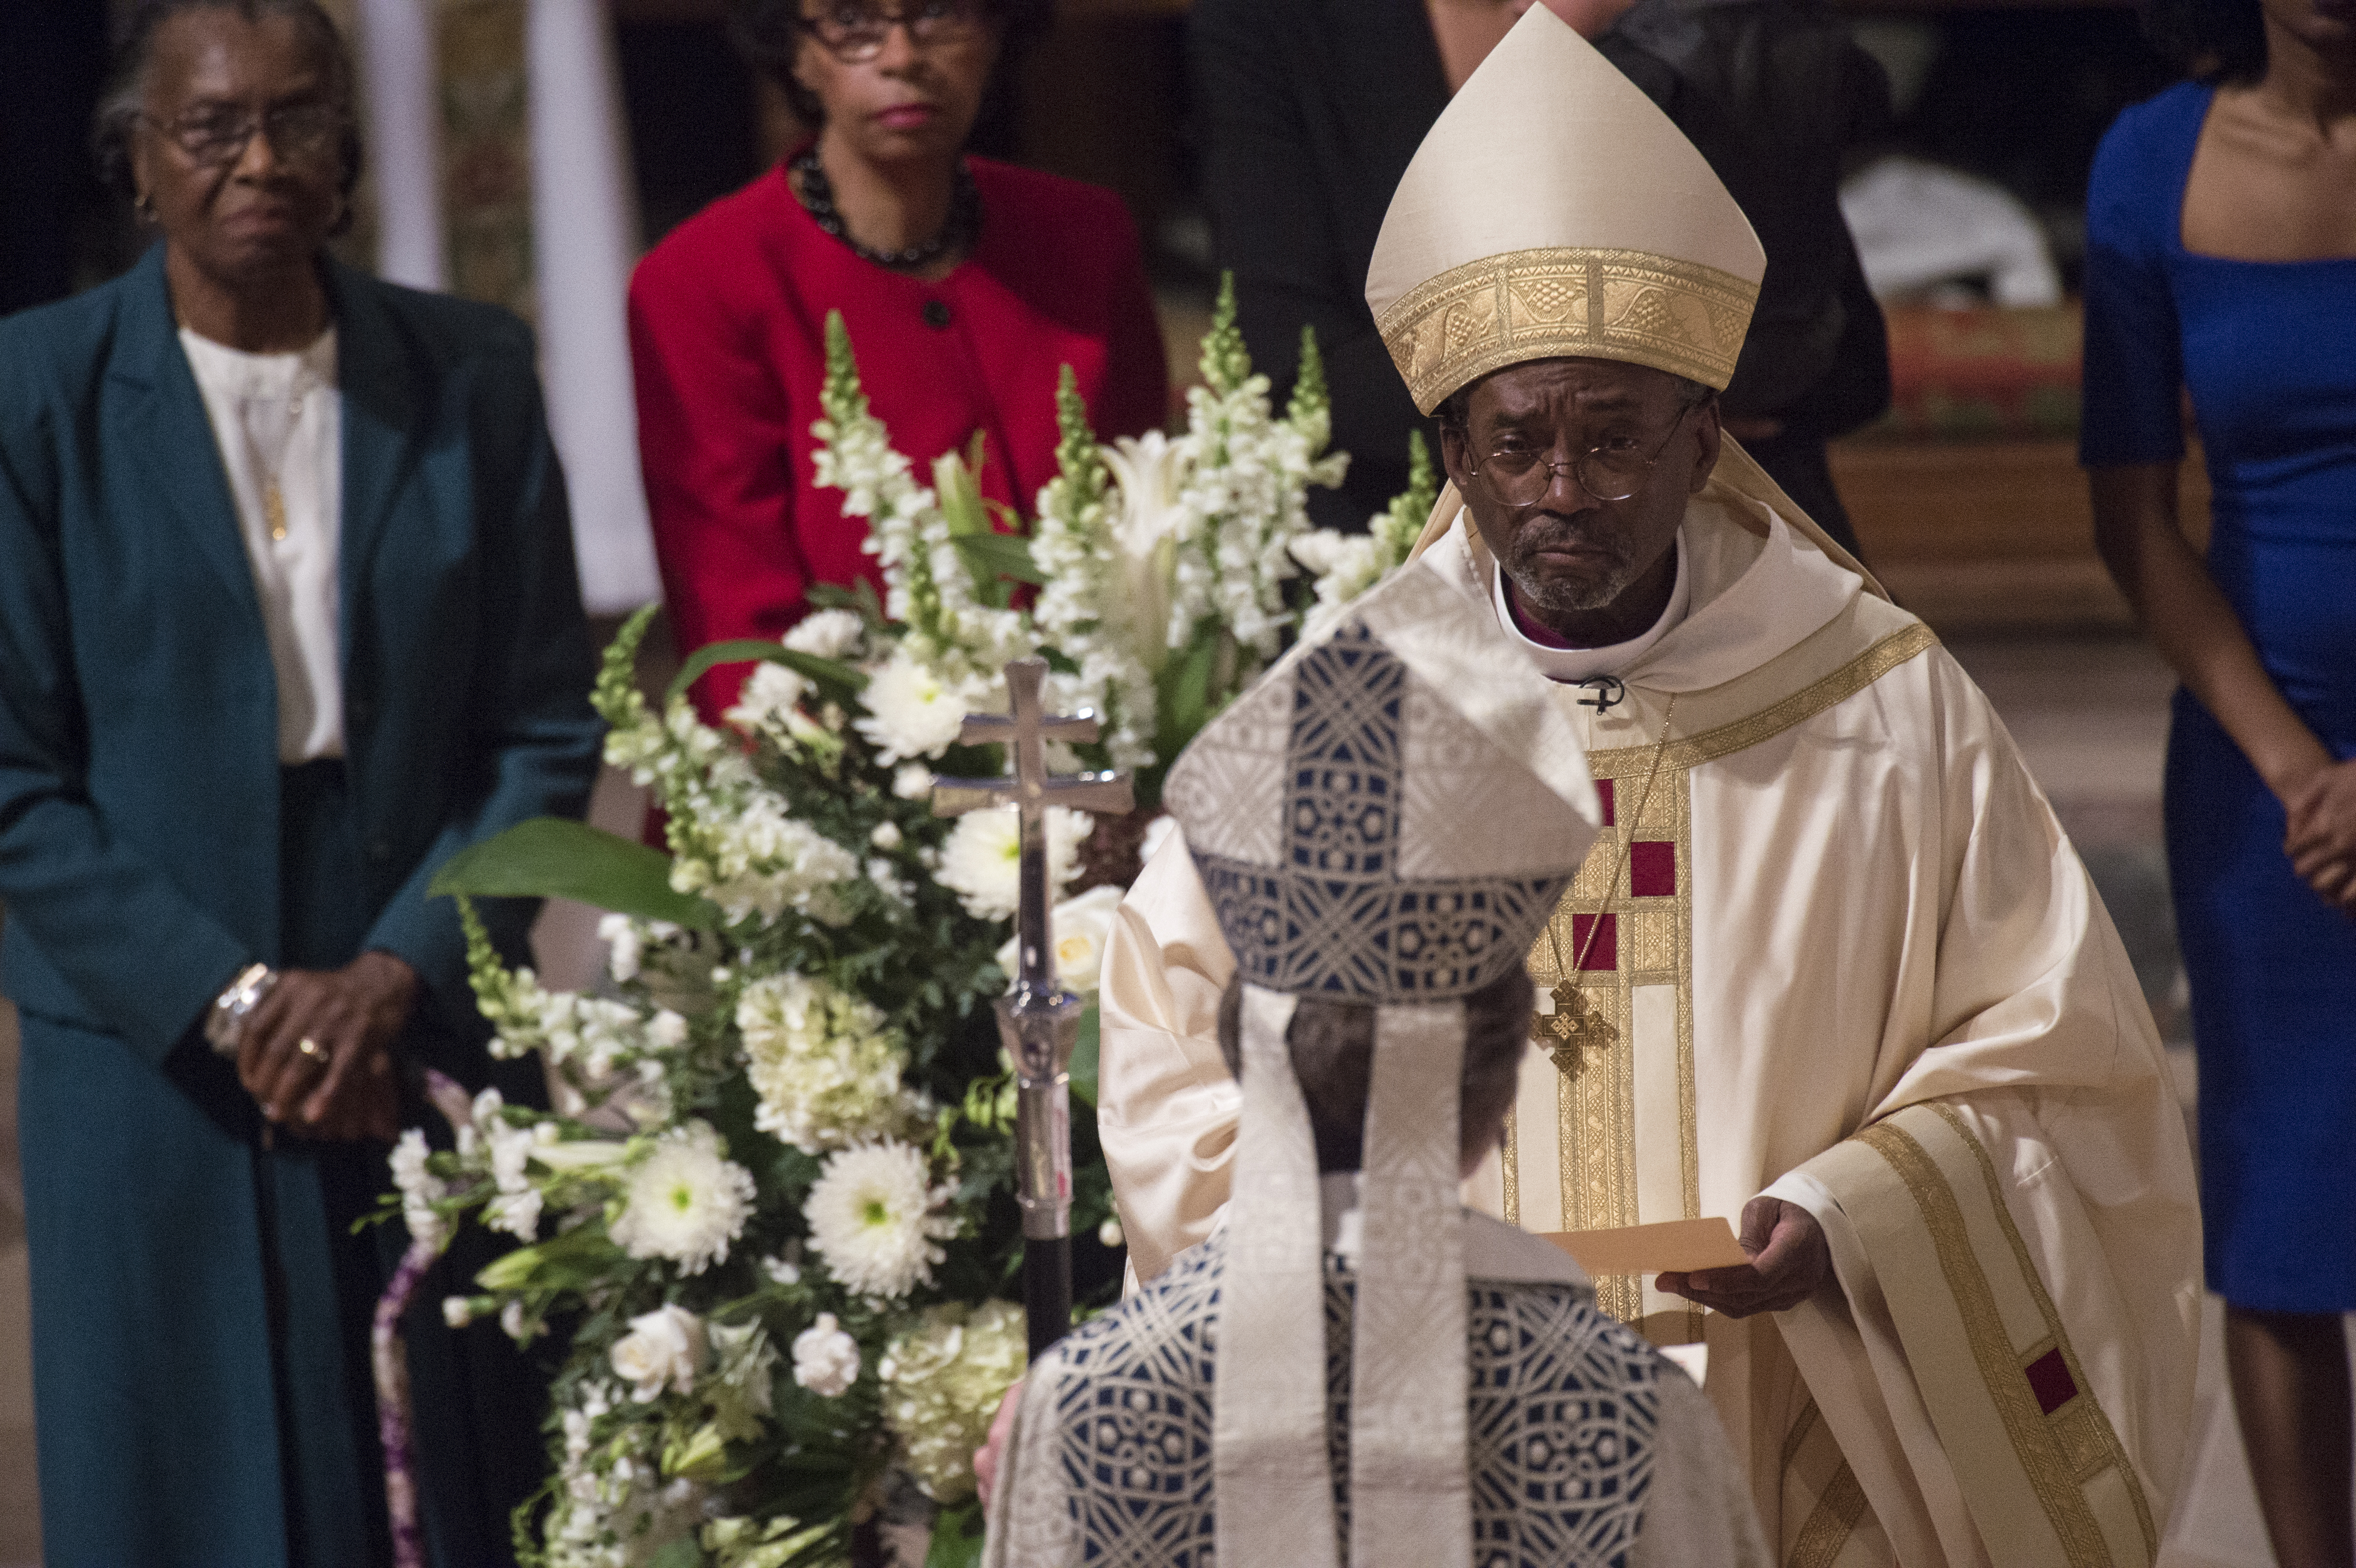 The Most Reverend Michael Bruce Curry, the 27th Presiding Bishop of the Episcopal Church and Primate